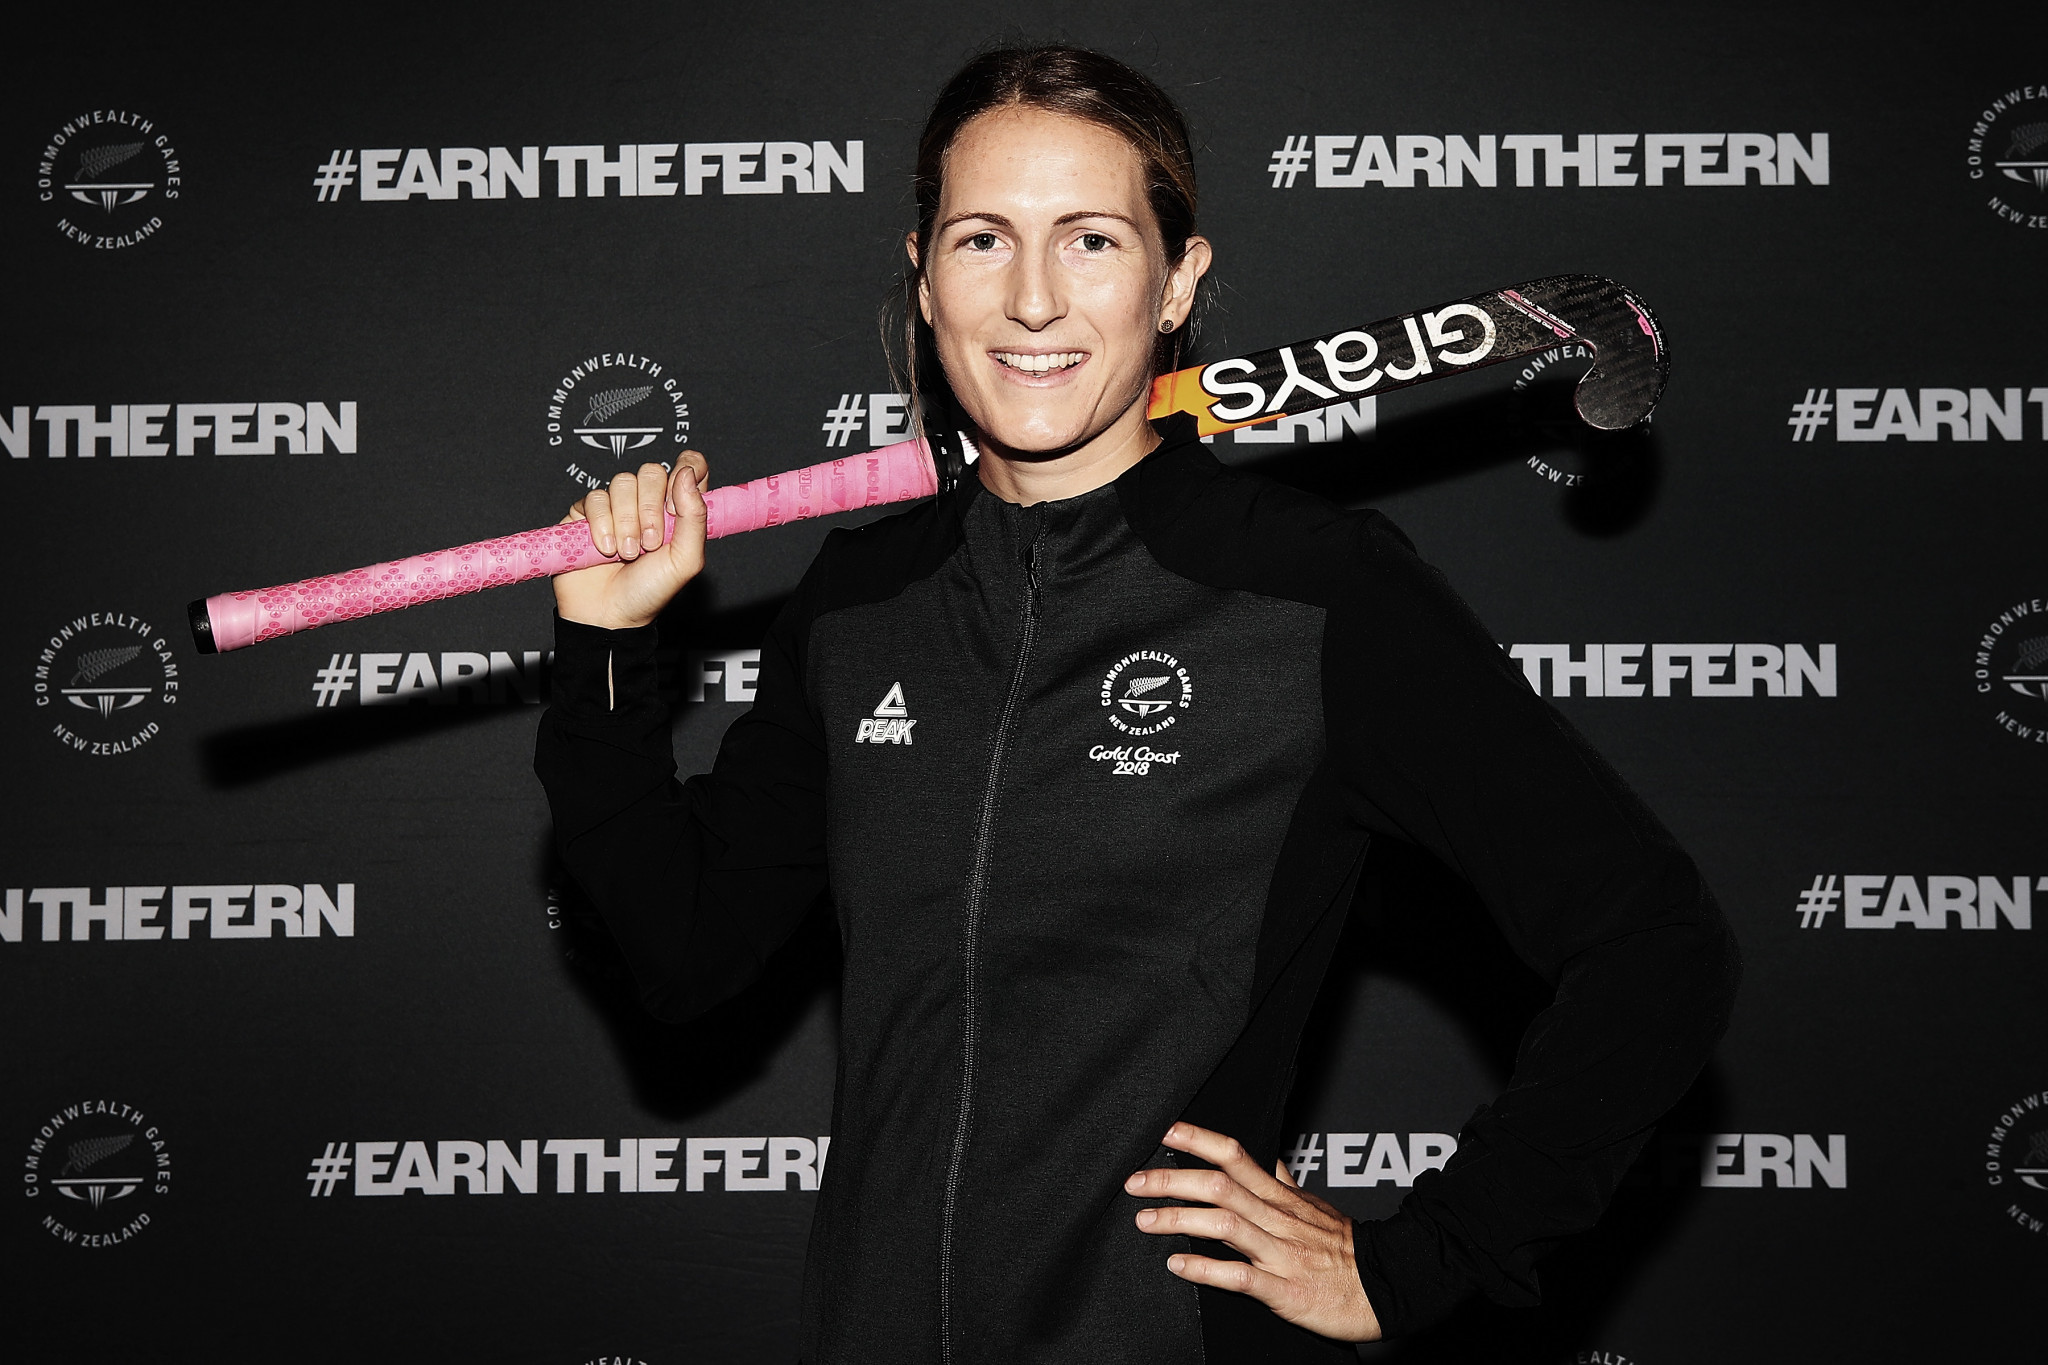 New Zealand women's hockey squad for Gold Coast 2018 announced